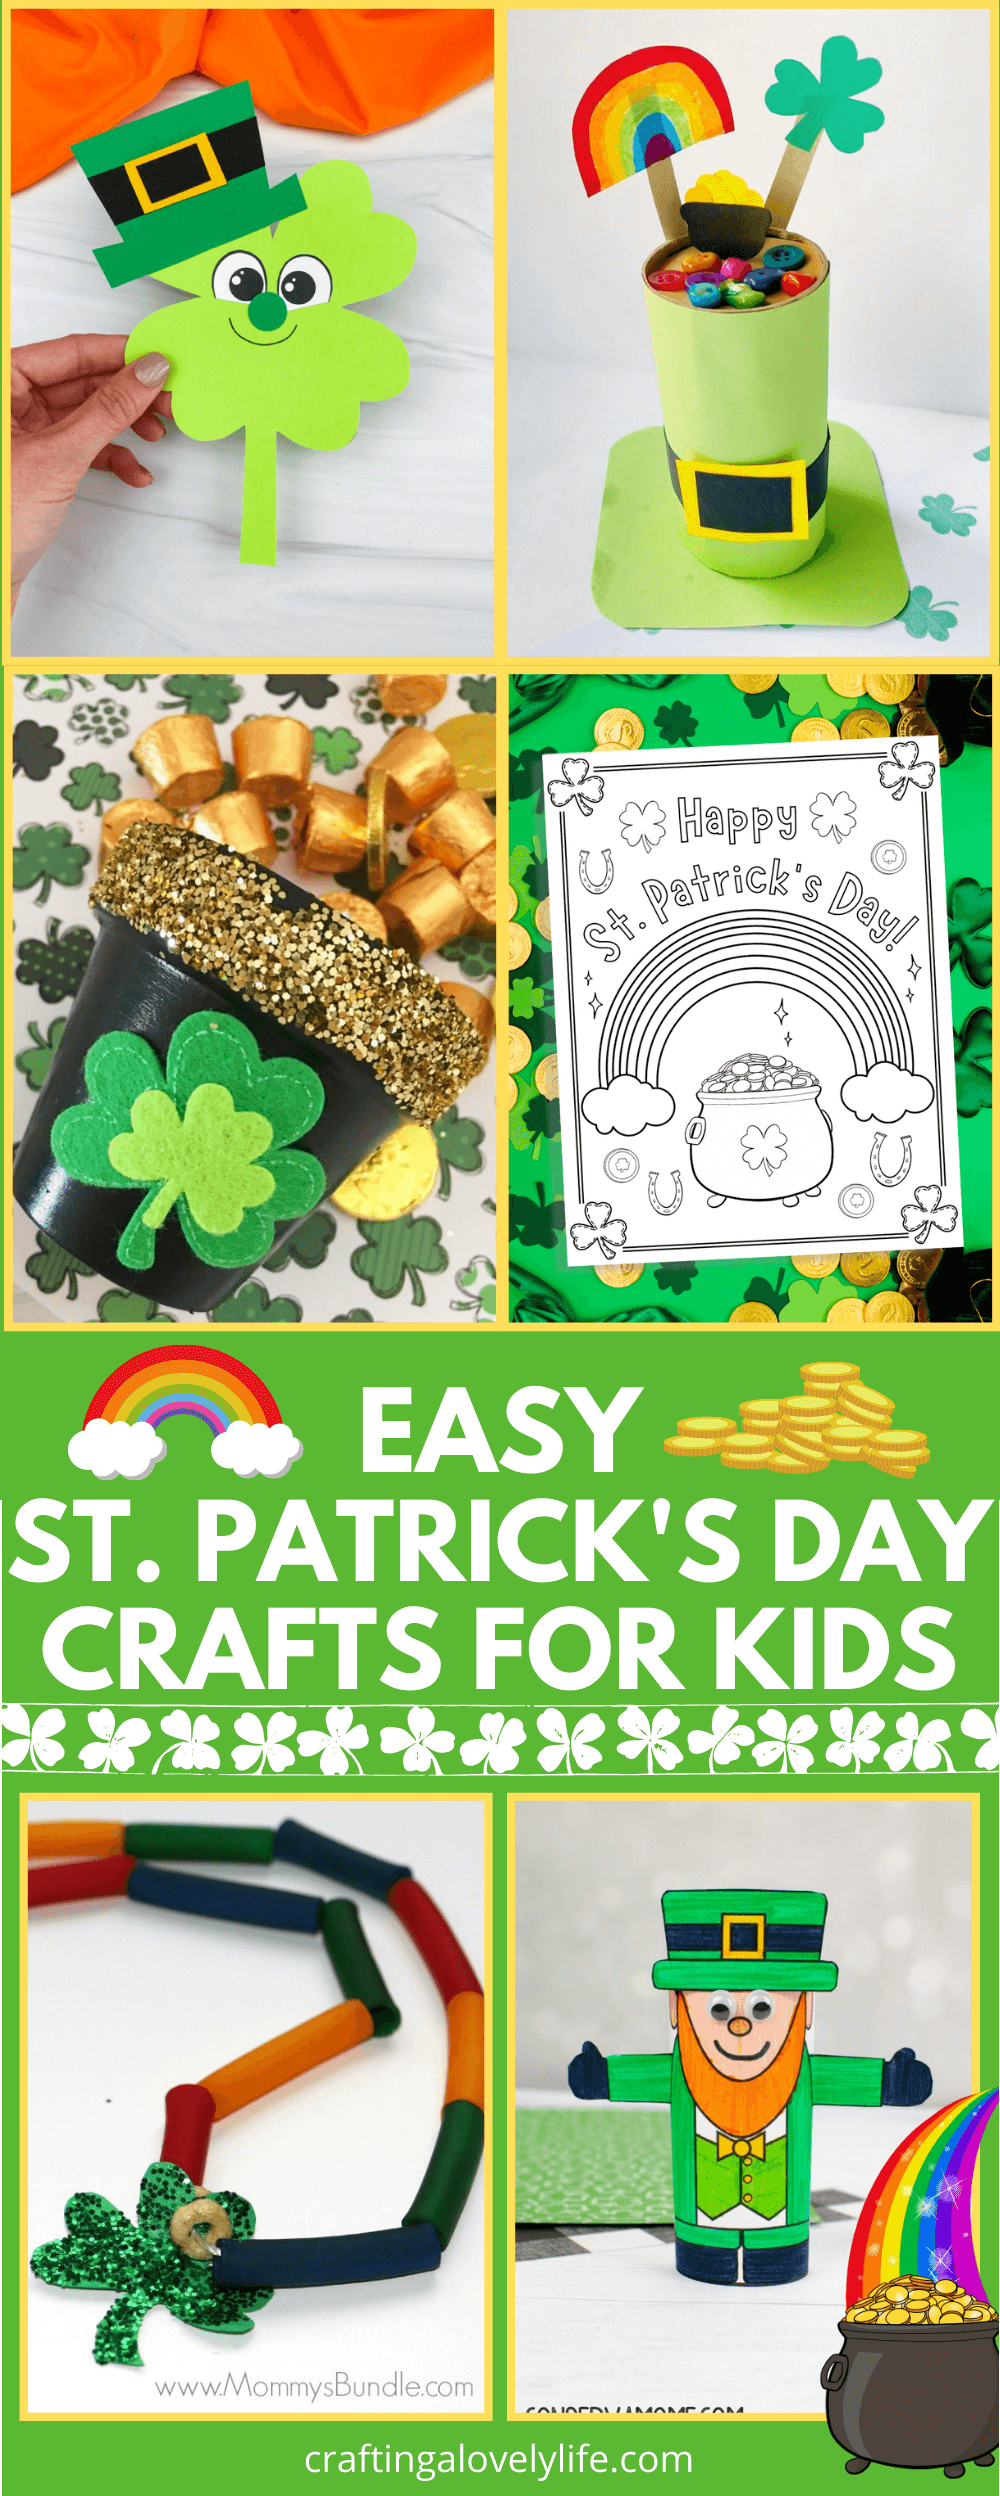 Easy St. Patrick's Day Craft Ideas For Kids